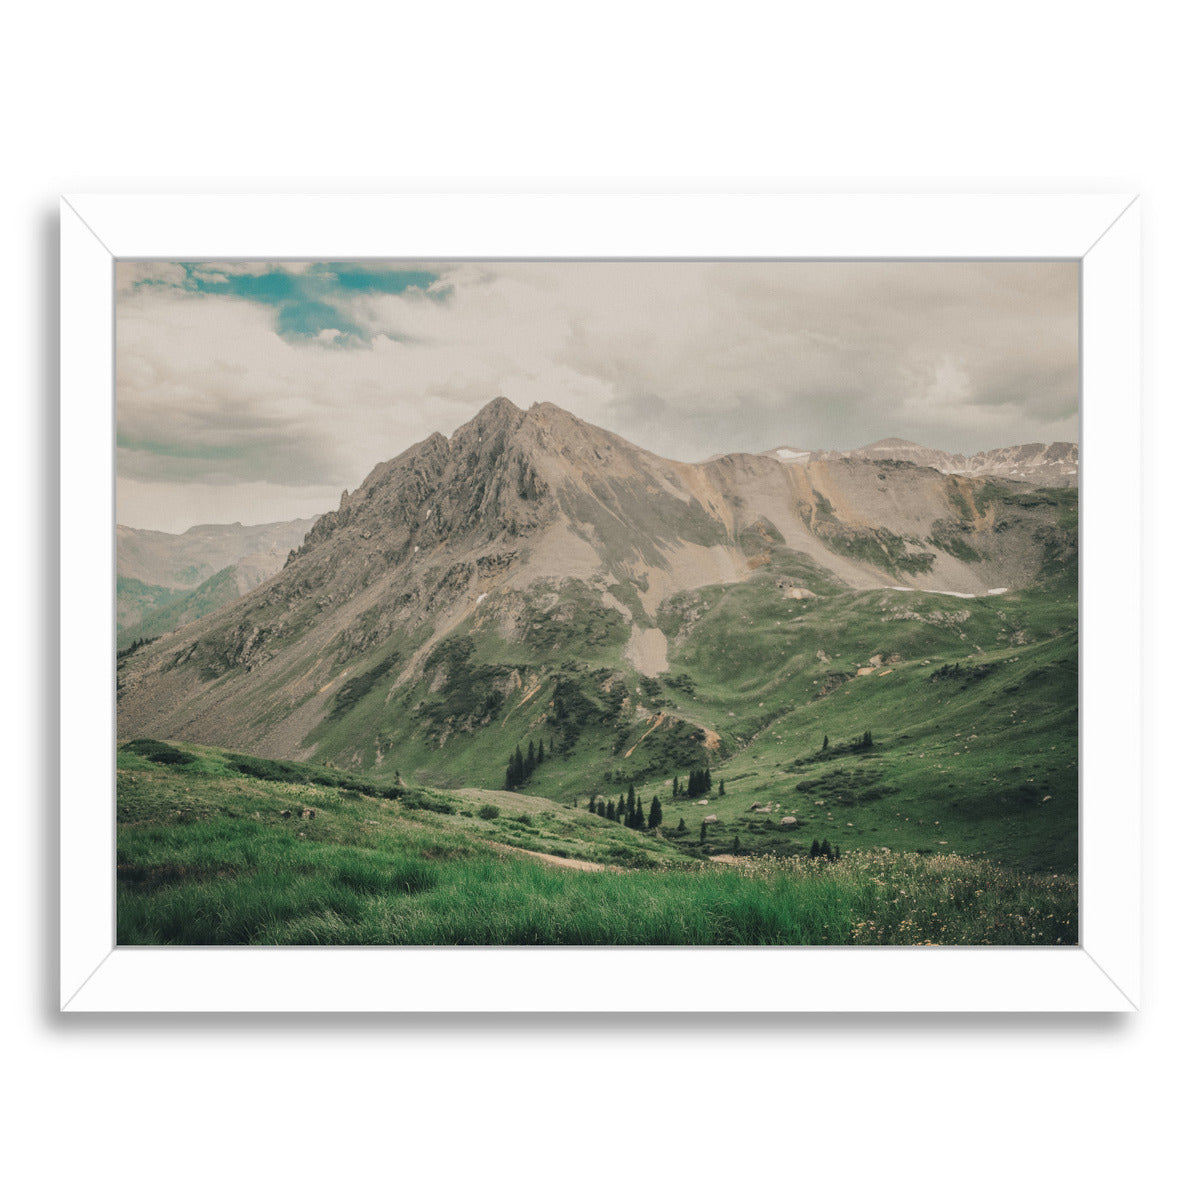 Colorado By Natalie Allen - White Framed Print - Wall Art - Americanflat